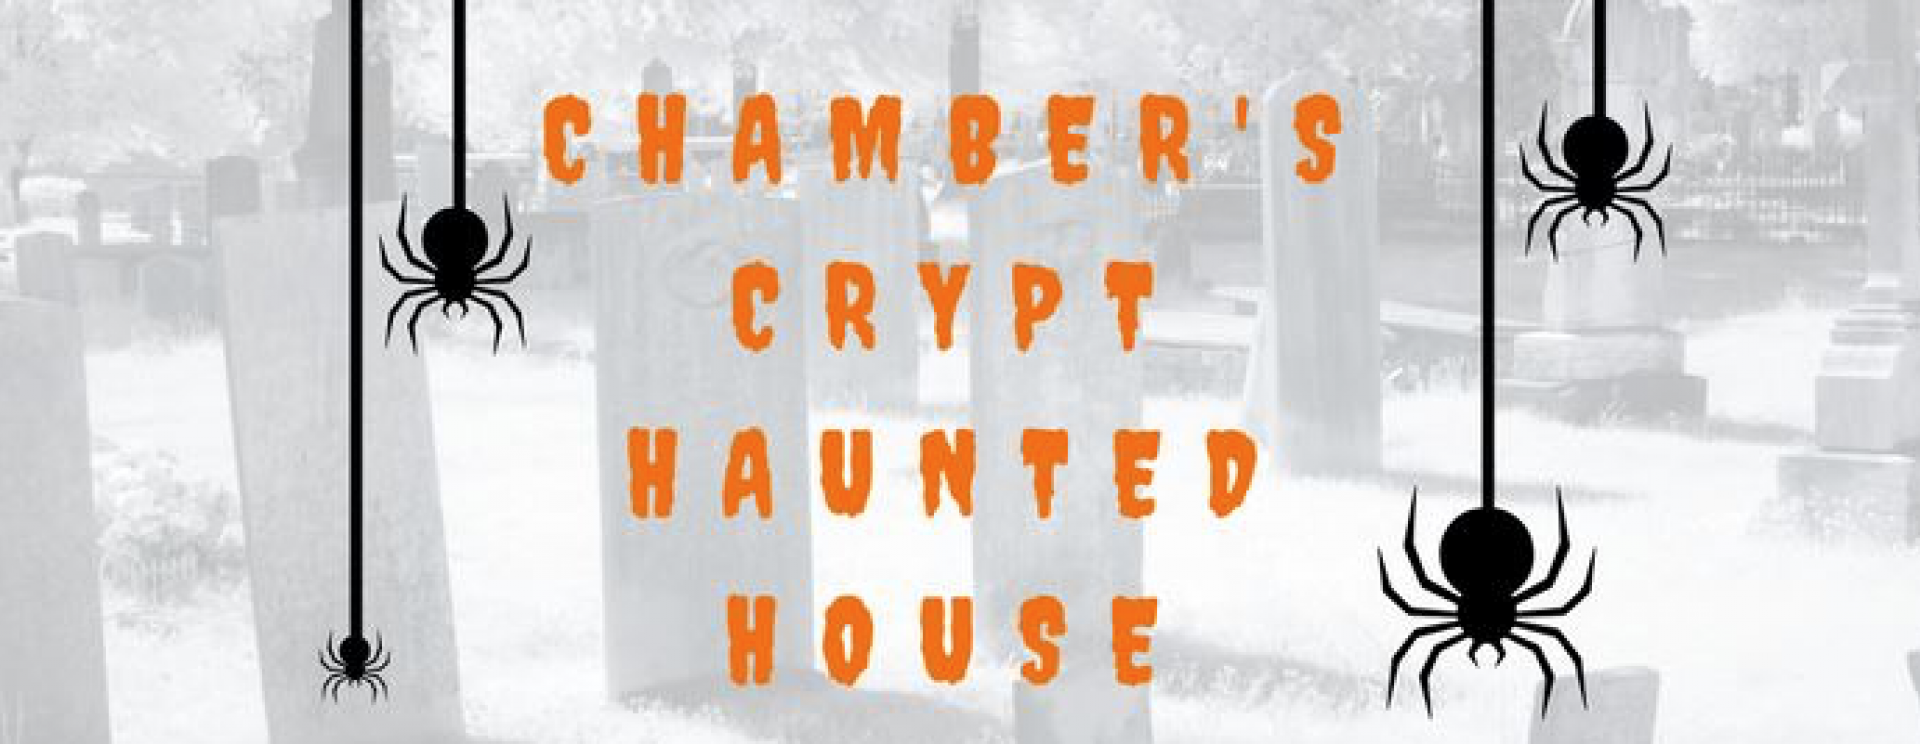 Sturgis Chamber's Crypt Haunted House